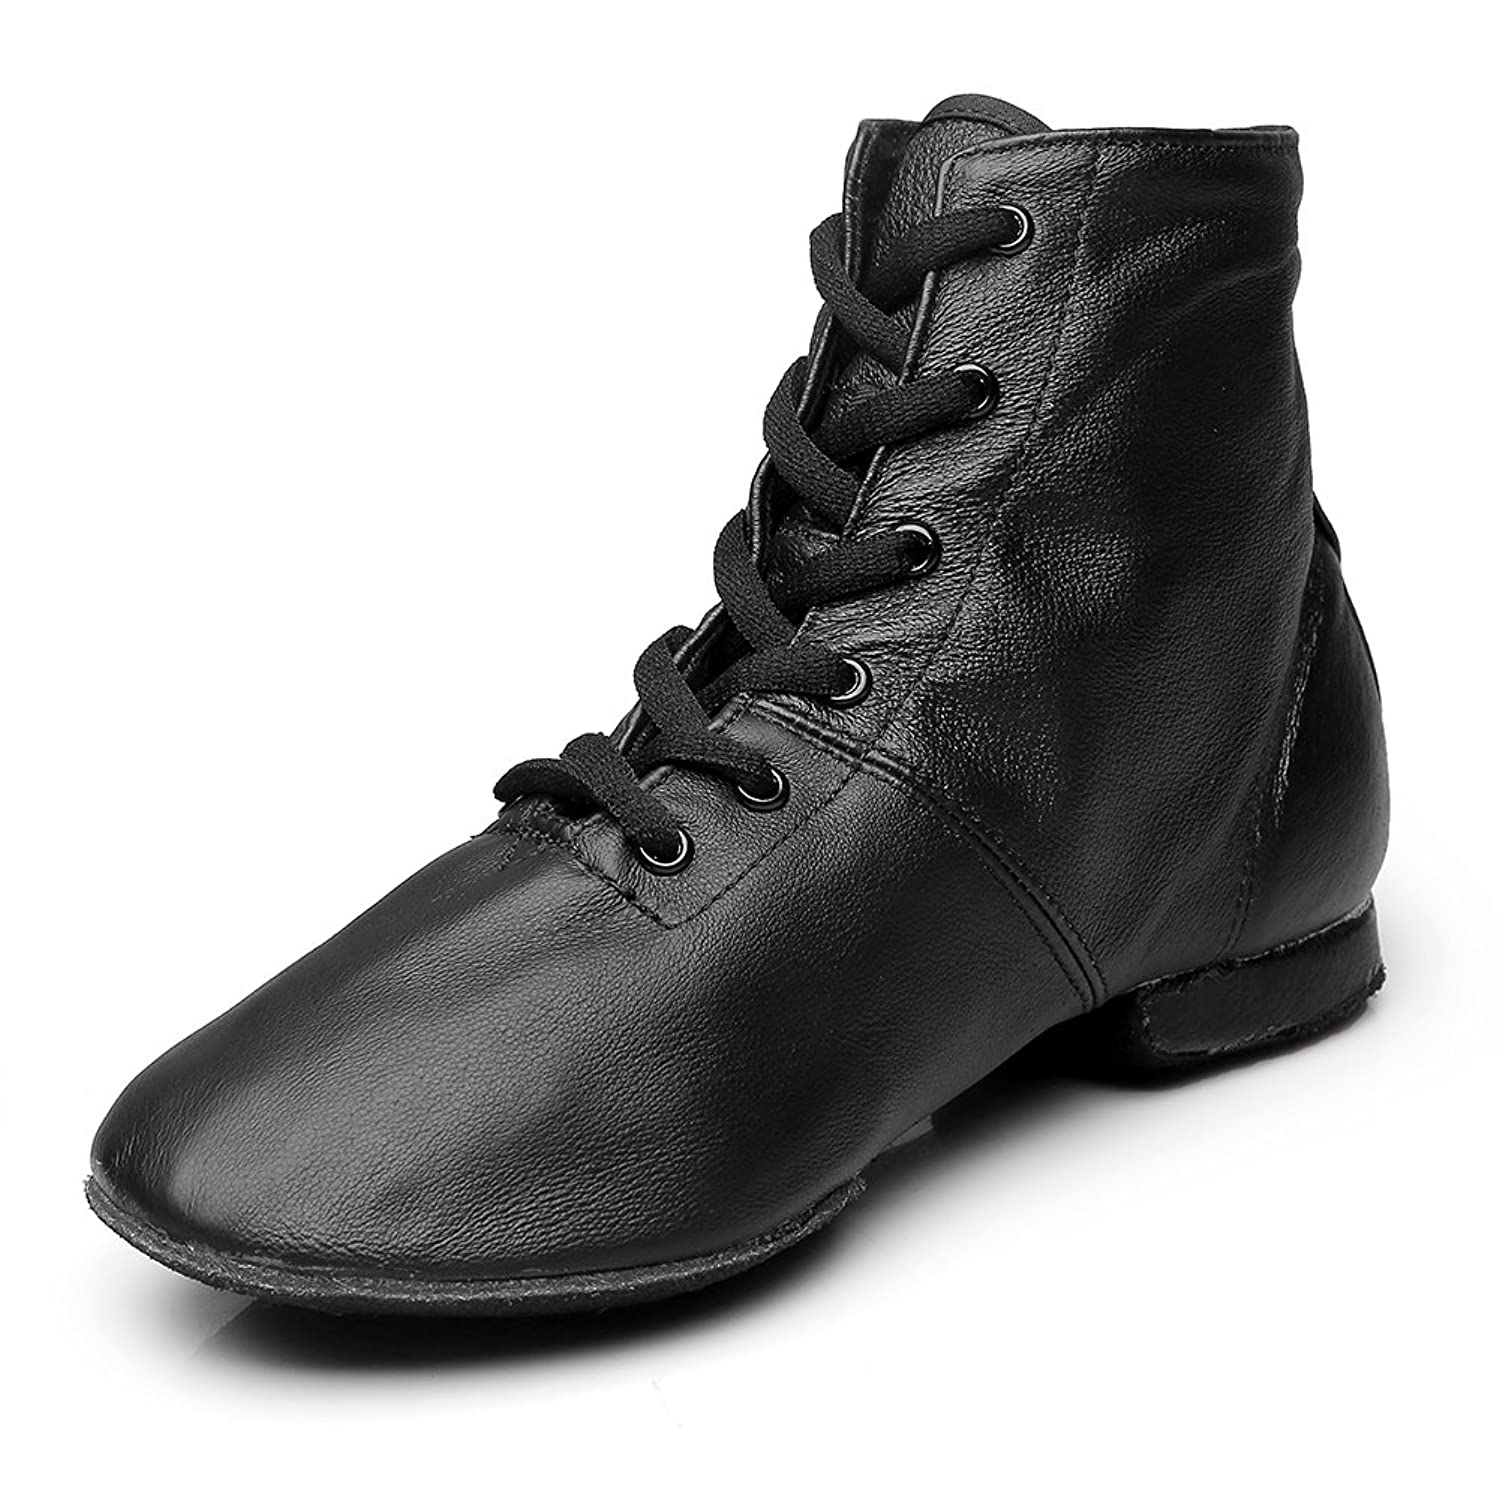 Vintage Boots, Retro Boots MSMAX Professional Soft Leather Unisex Dance Shoe $28.99 AT vintagedancer.com